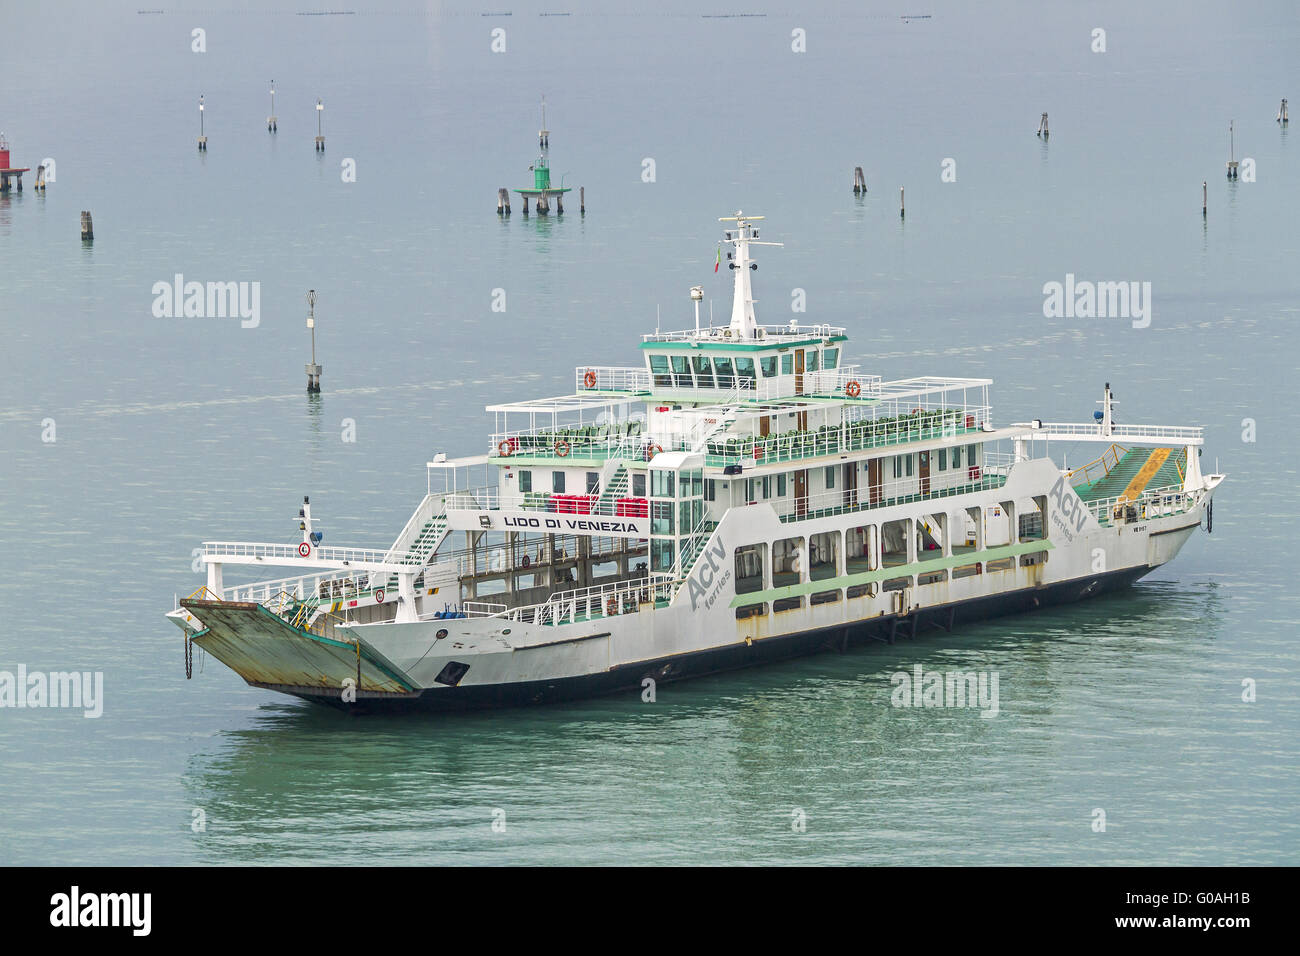 Ferry Manoeuvring Around Obstacles Venice Italy - Stock Image